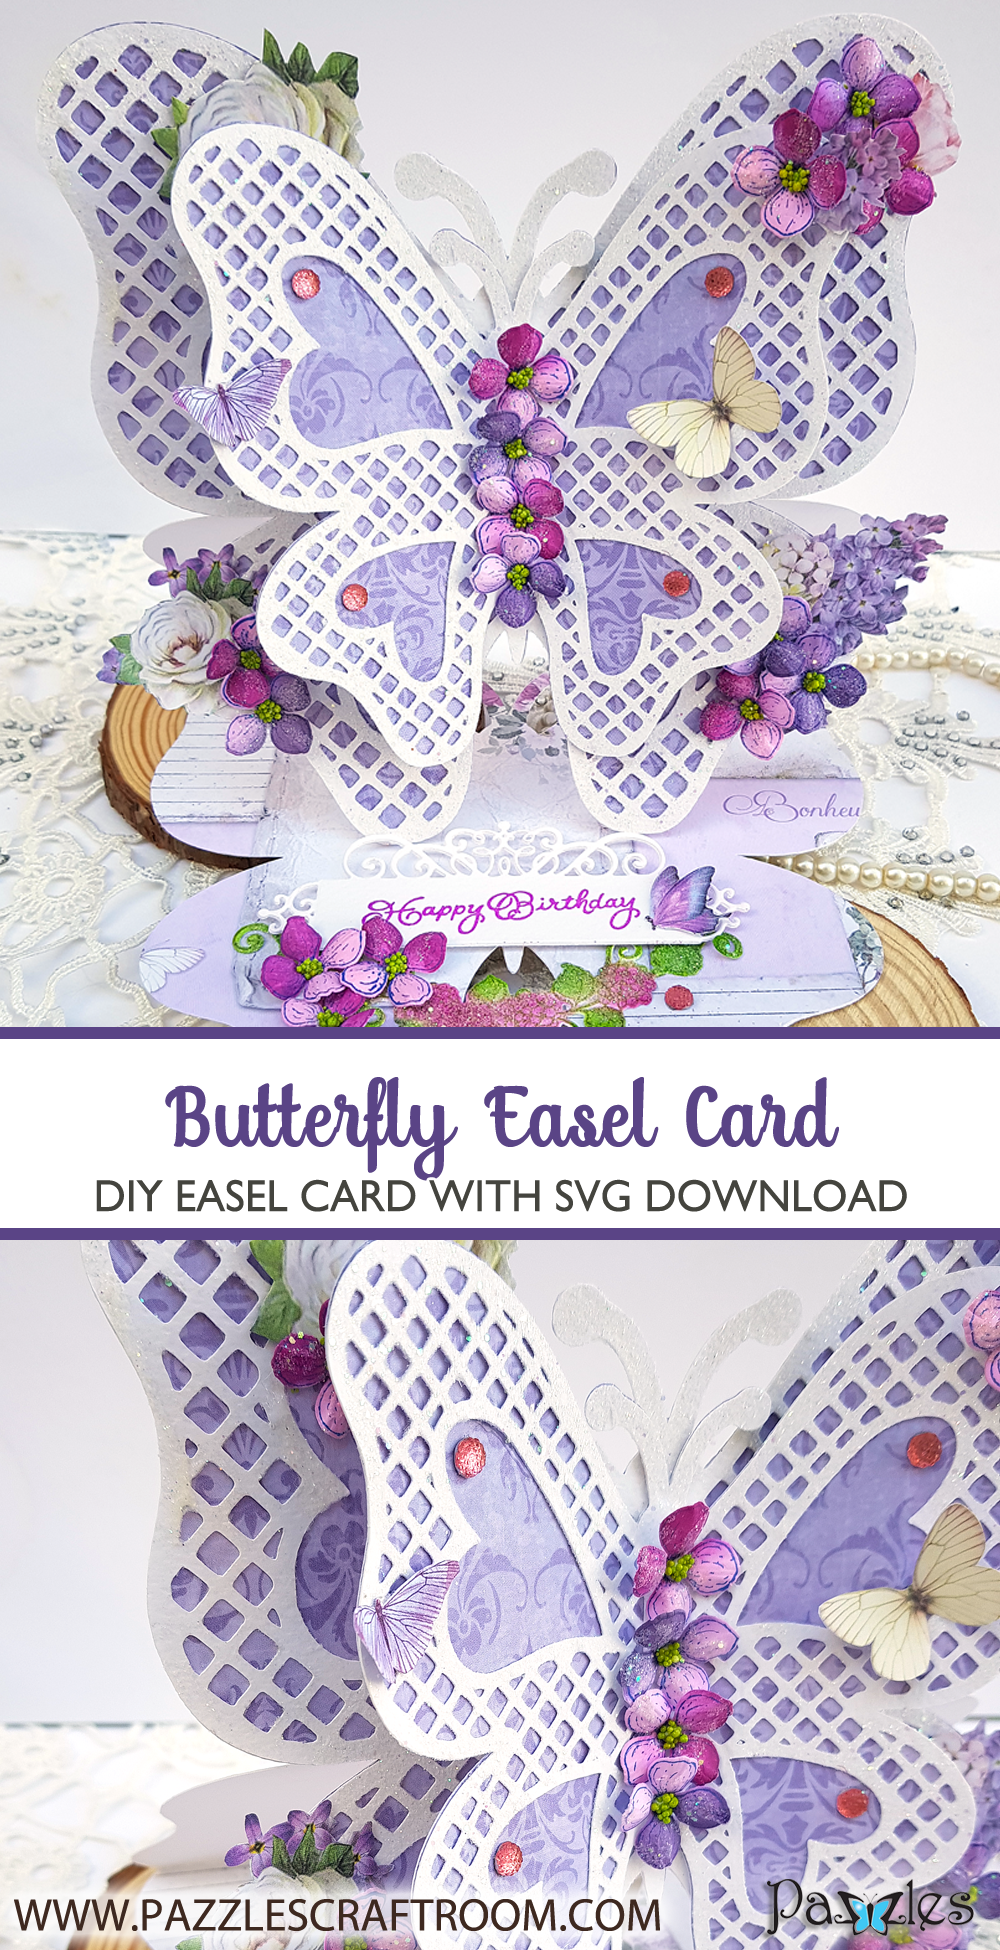 Pazzles DIY Butterfly Easel Card with instant SVG download. Compatible with all major electronic cutters including Pazzles Inspiration, Cricut, and Silhouette Cameo. Design by Nida Tanweer.